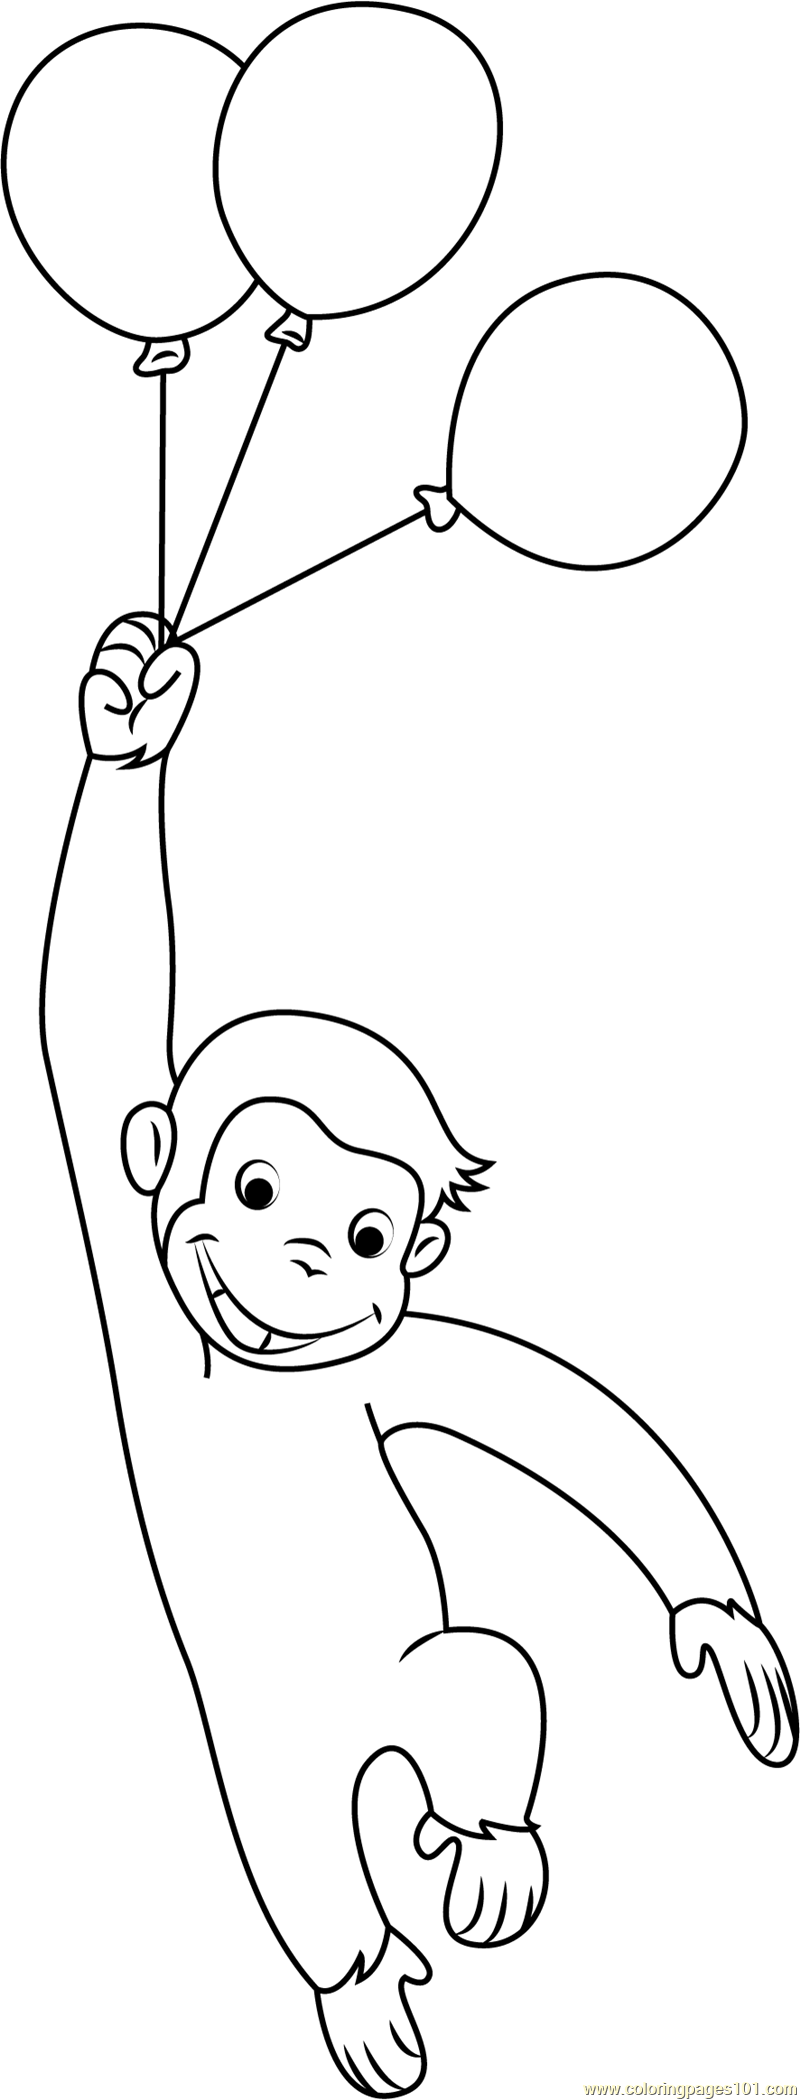 curious george with balloons coloring page free curious george